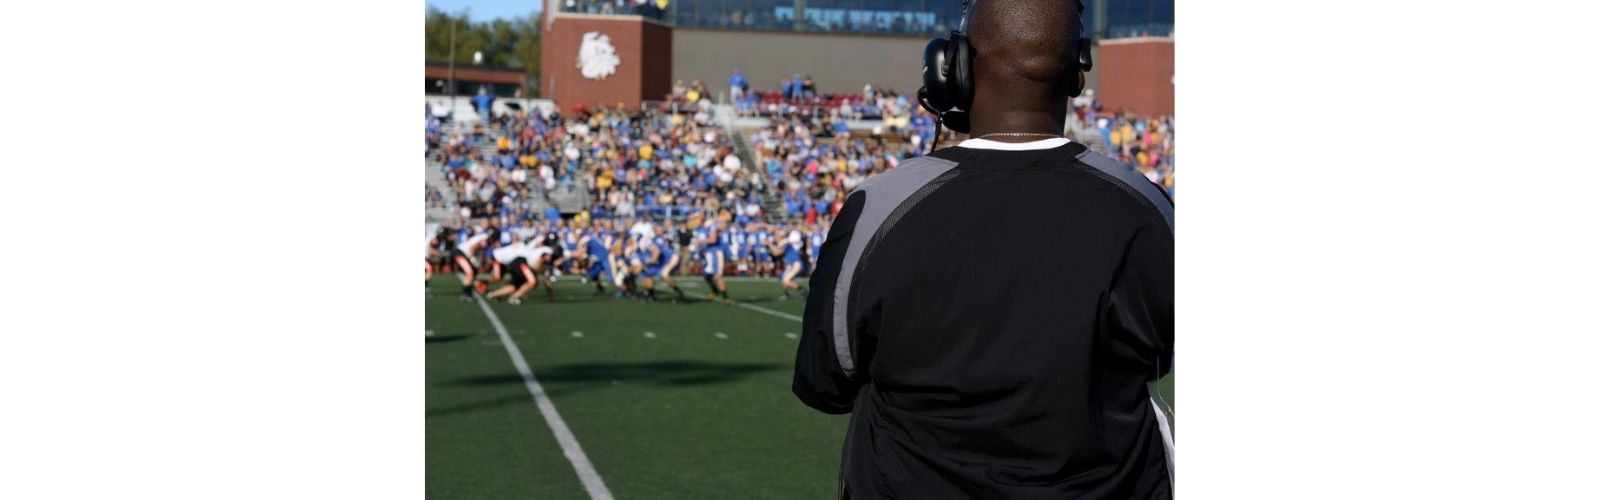 About Me Header Lessons from the Sidelines